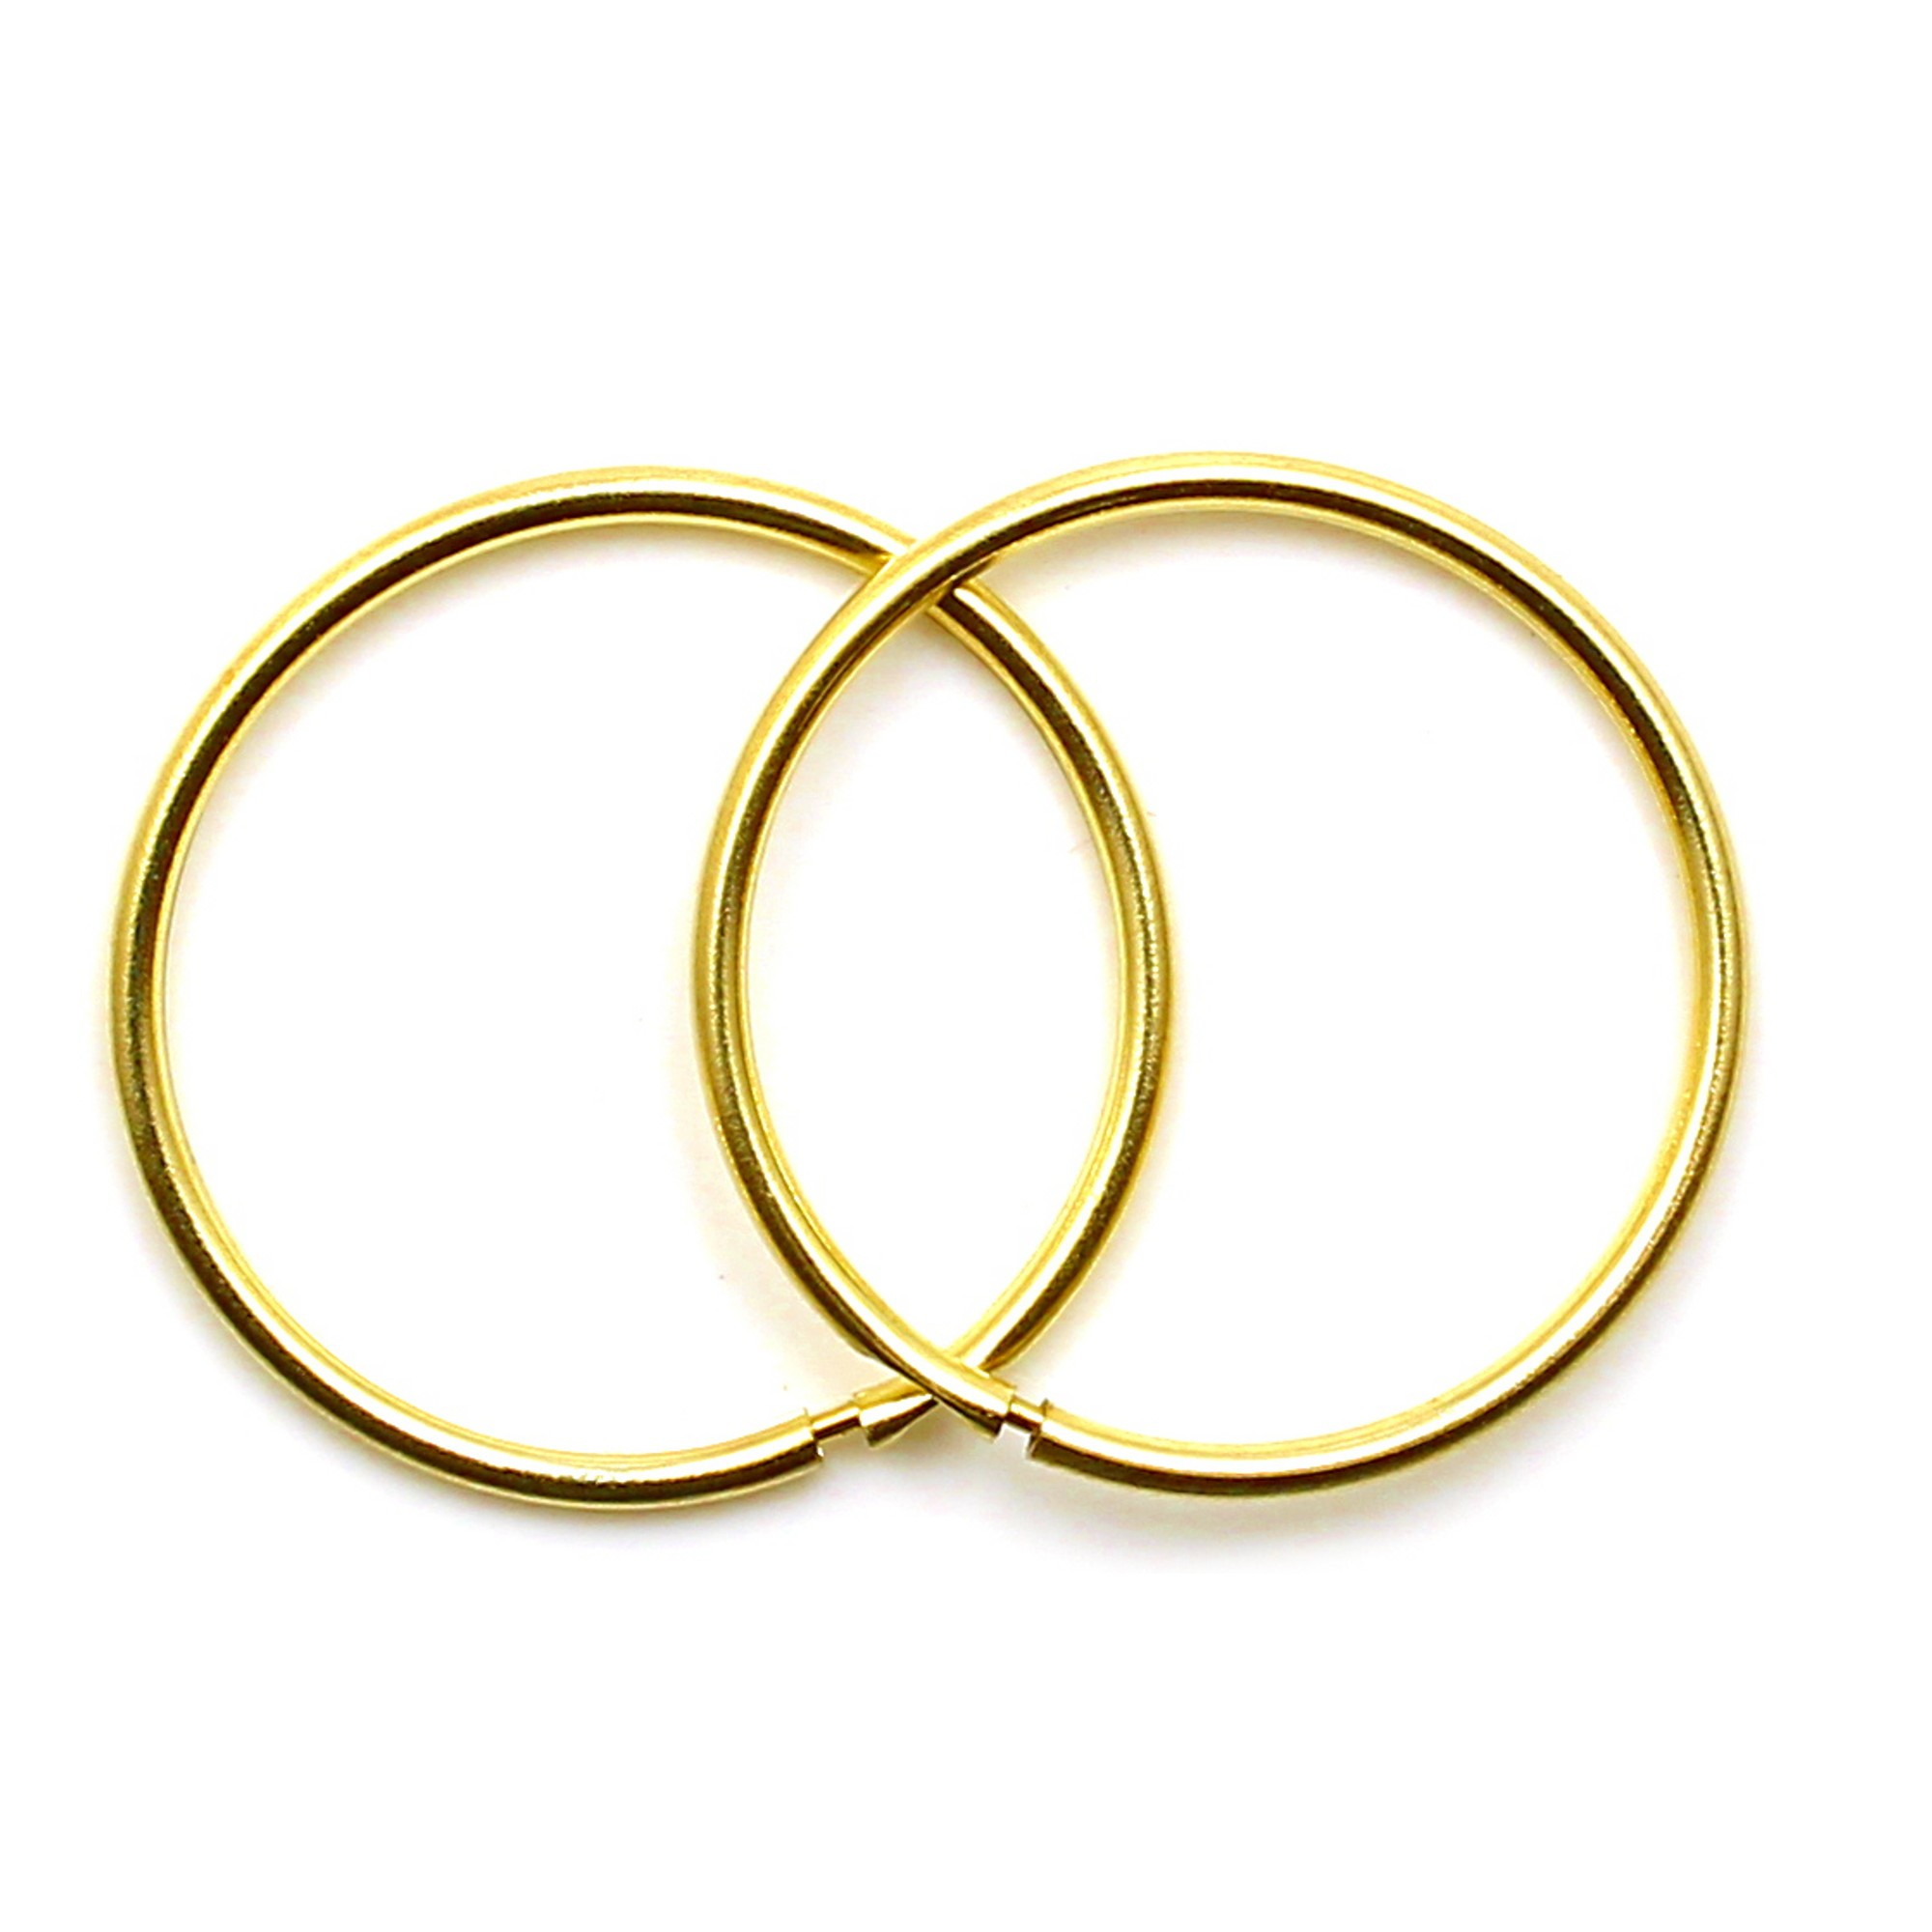 Arranview Jewellery Gold Hinged Heavy Weight Hoop Earring (15mm) - 375 9ct Yellow Gold uZccT3